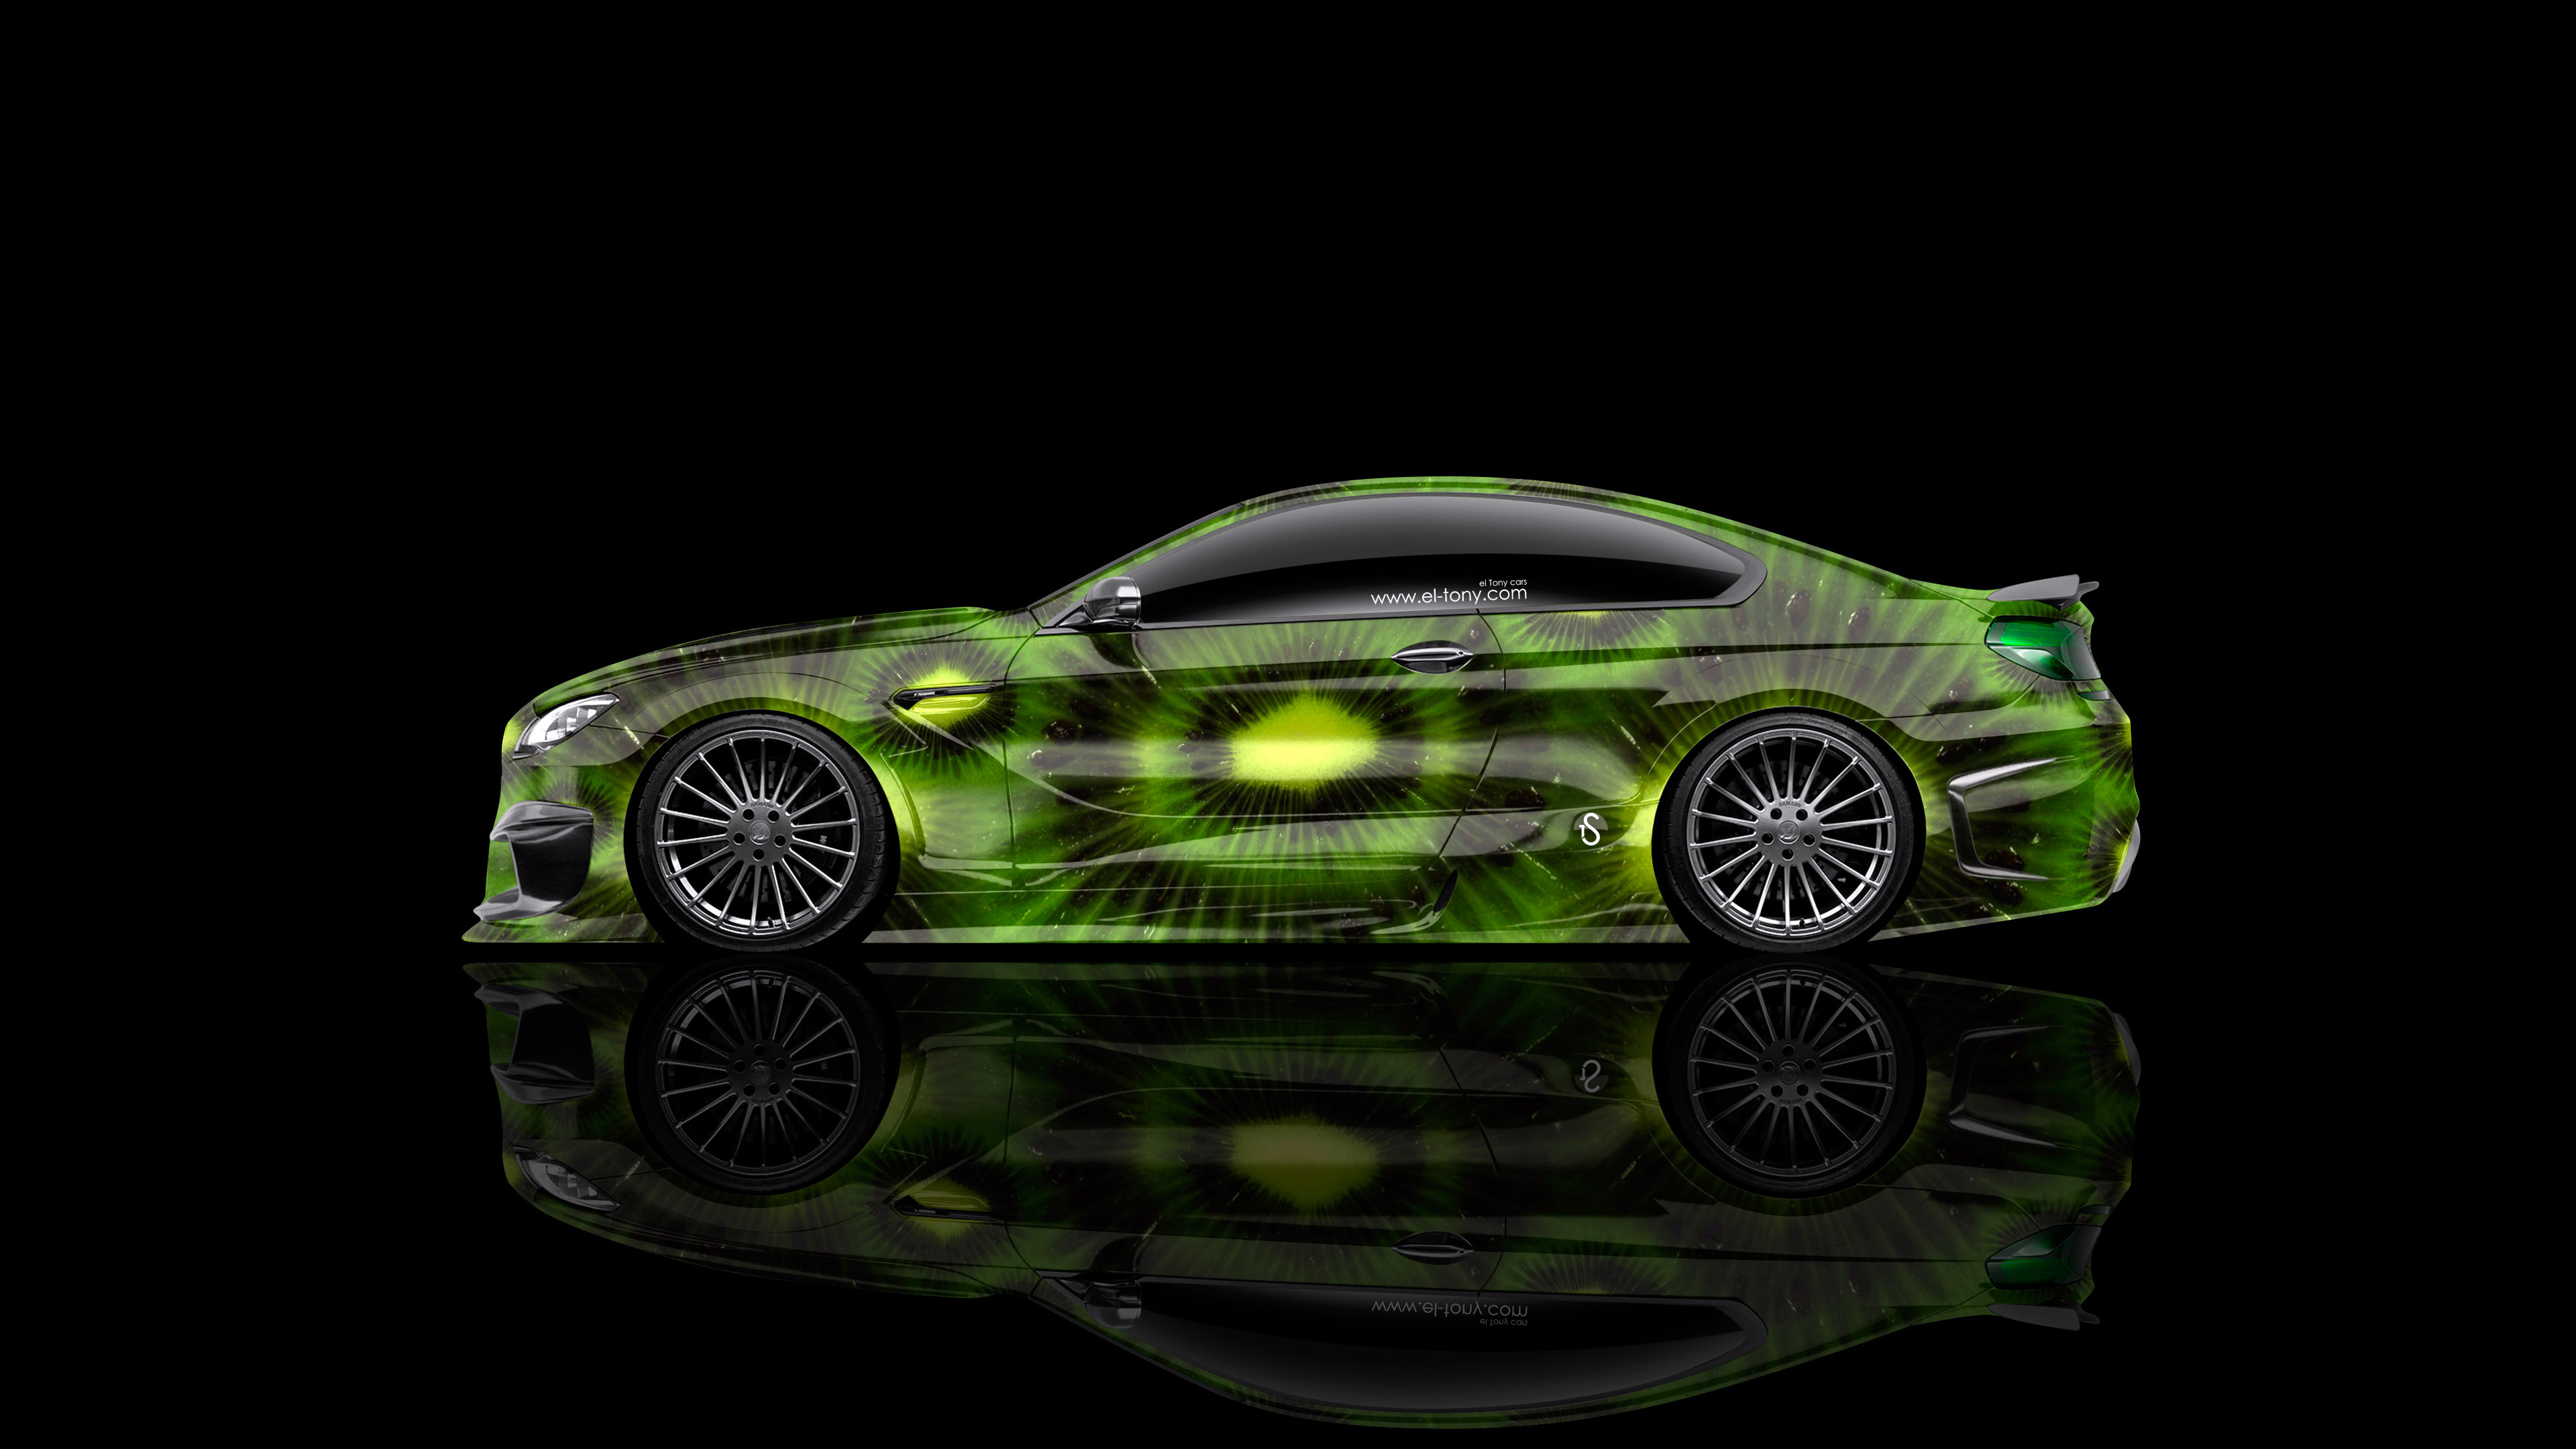 Charmant BMW M6 Hamann Tuning Side Kiwi Aerography Car